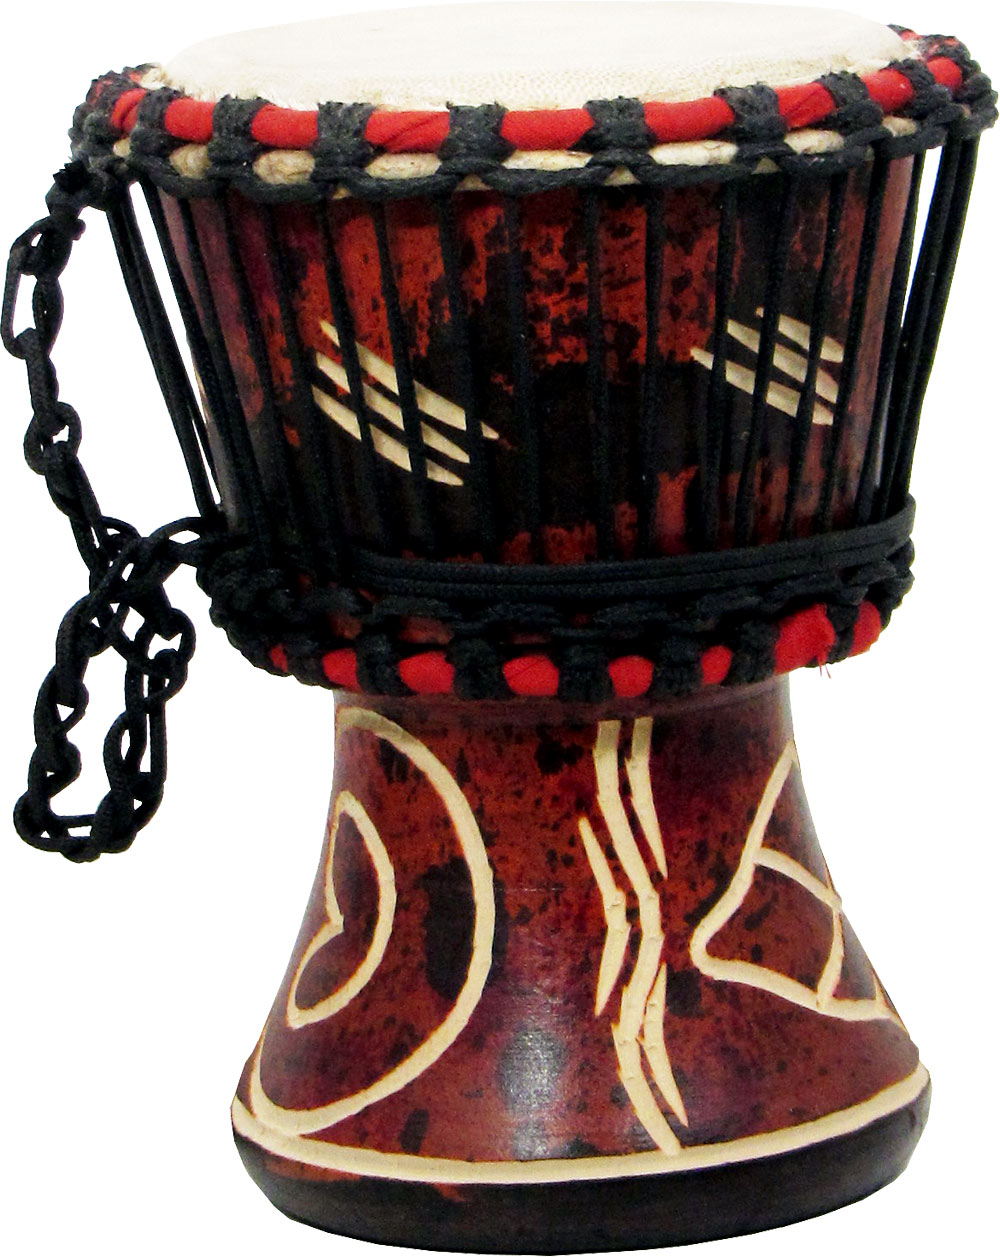 Atlas Djembe 4inch Head, Wooden Body Dark colored shell with carving. Average 7inch high